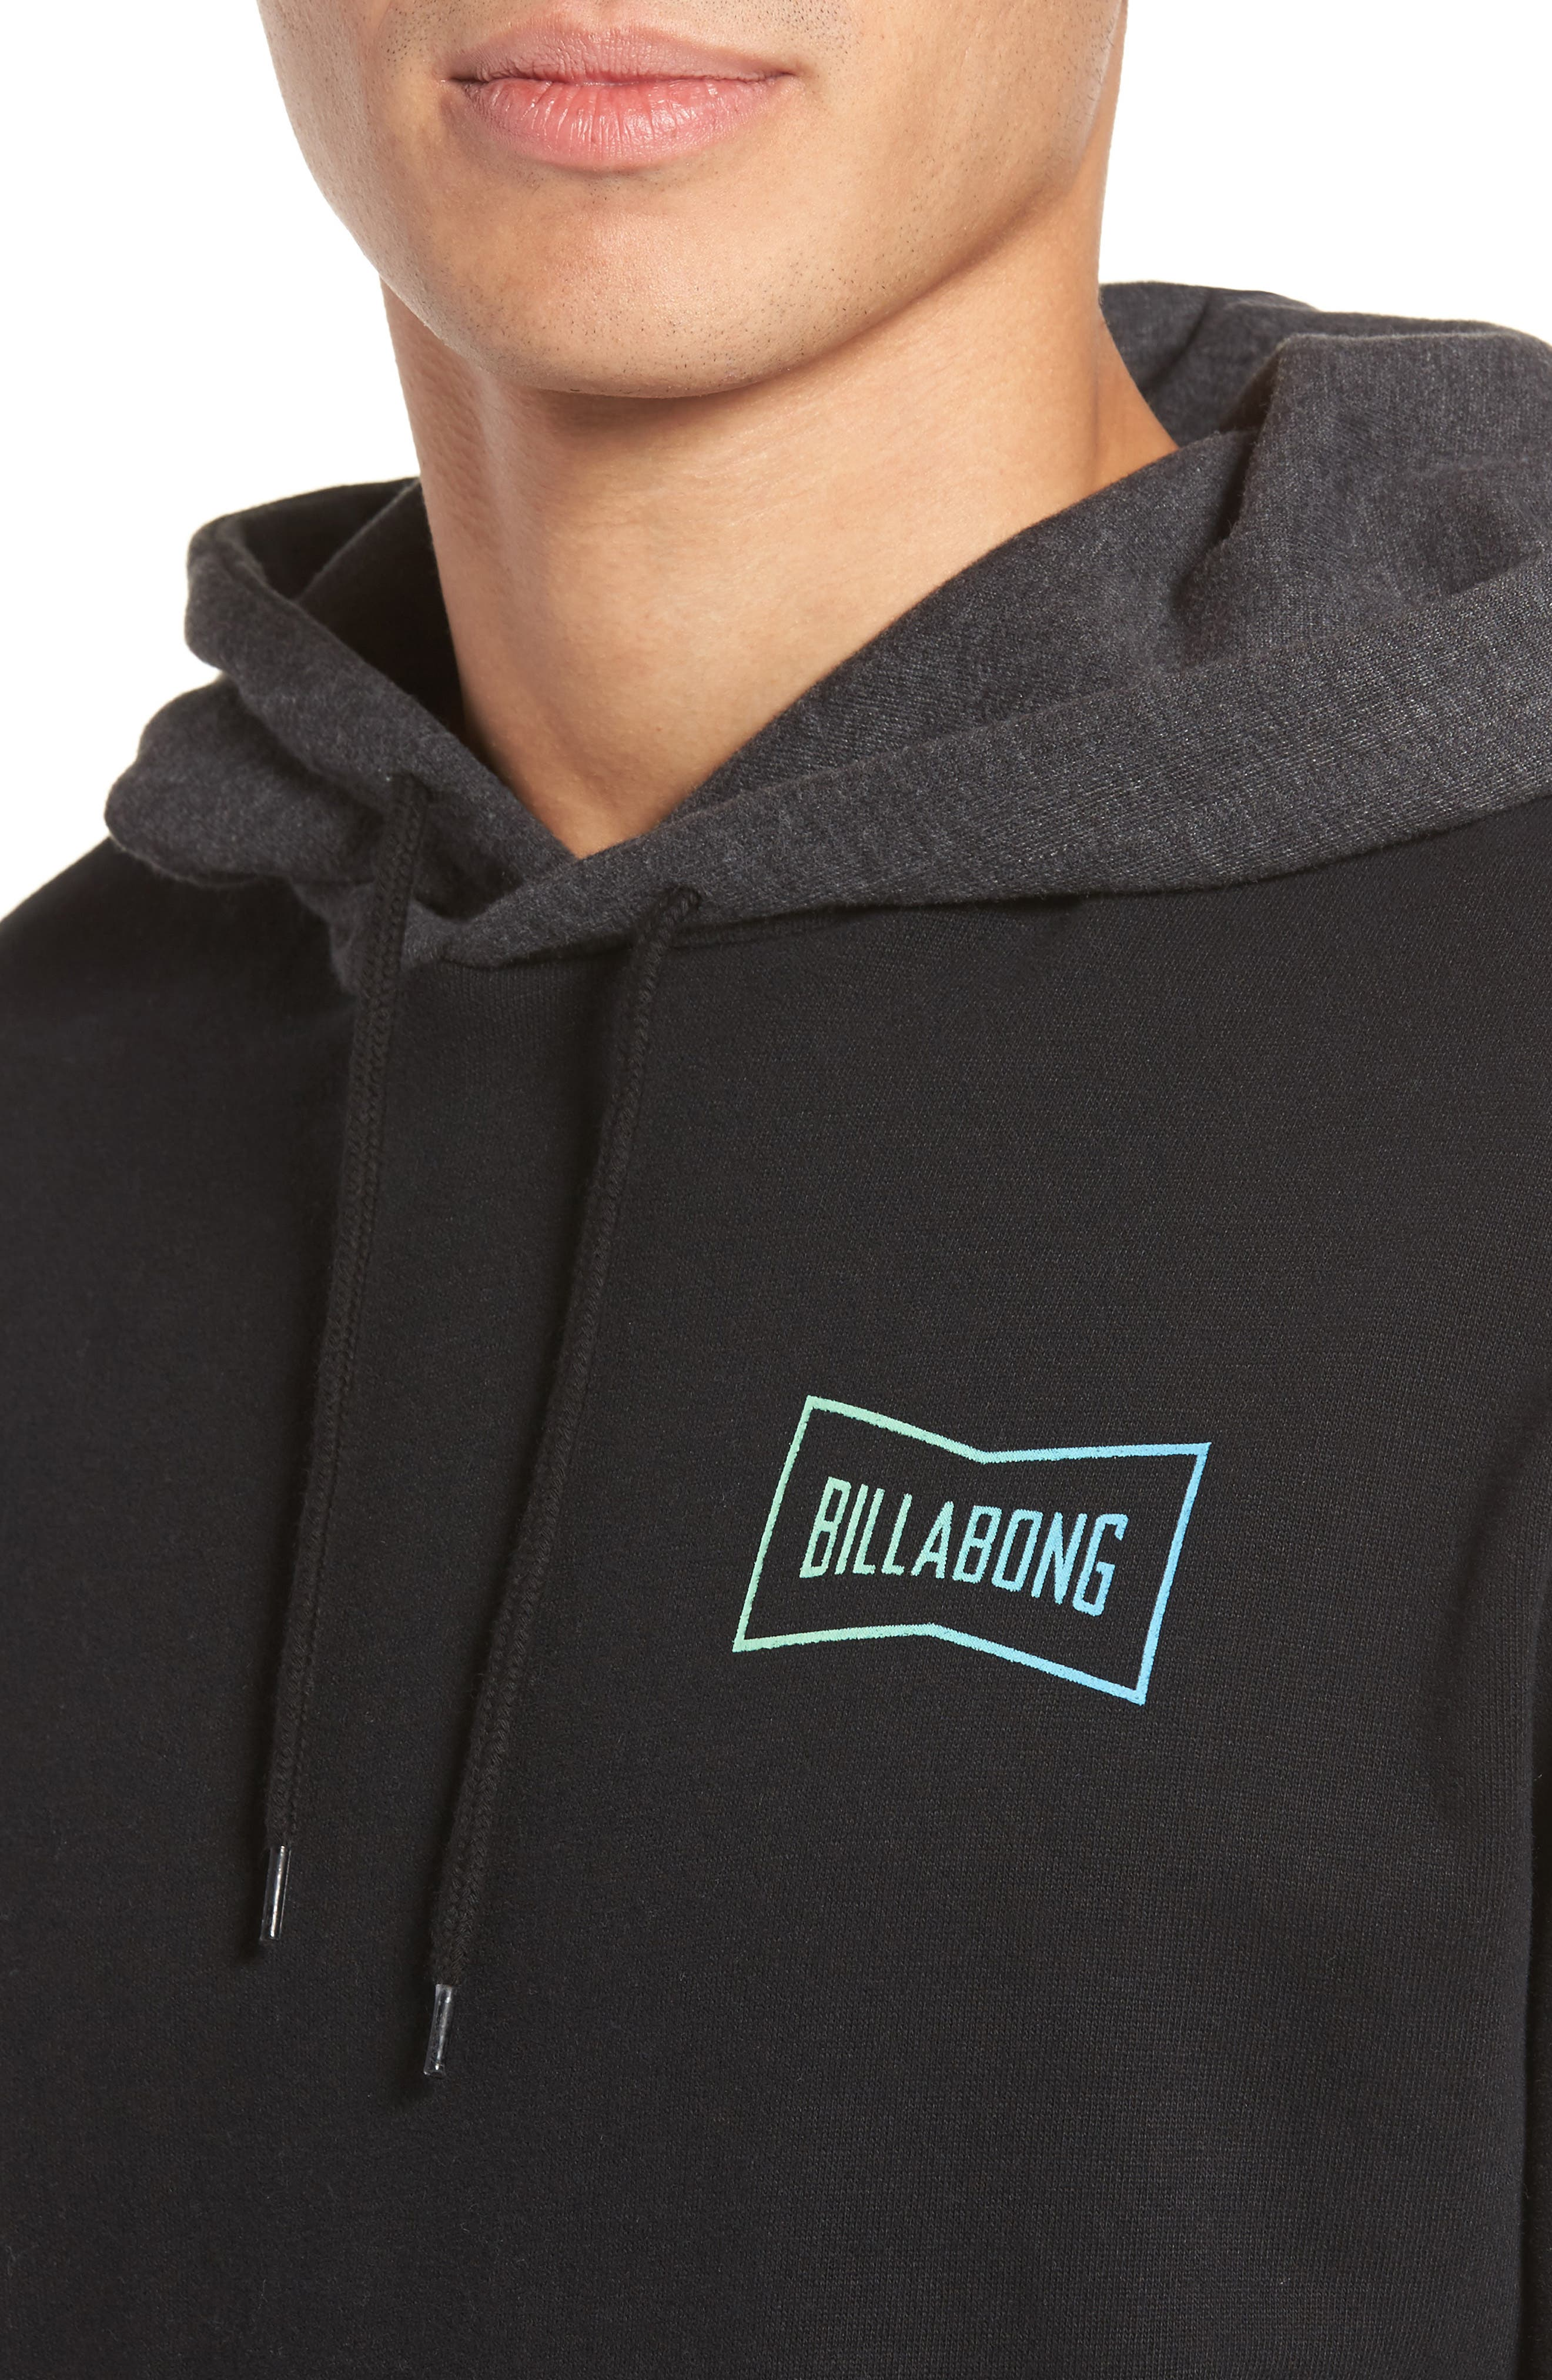 Piston Hoodie,                             Alternate thumbnail 4, color,                             001